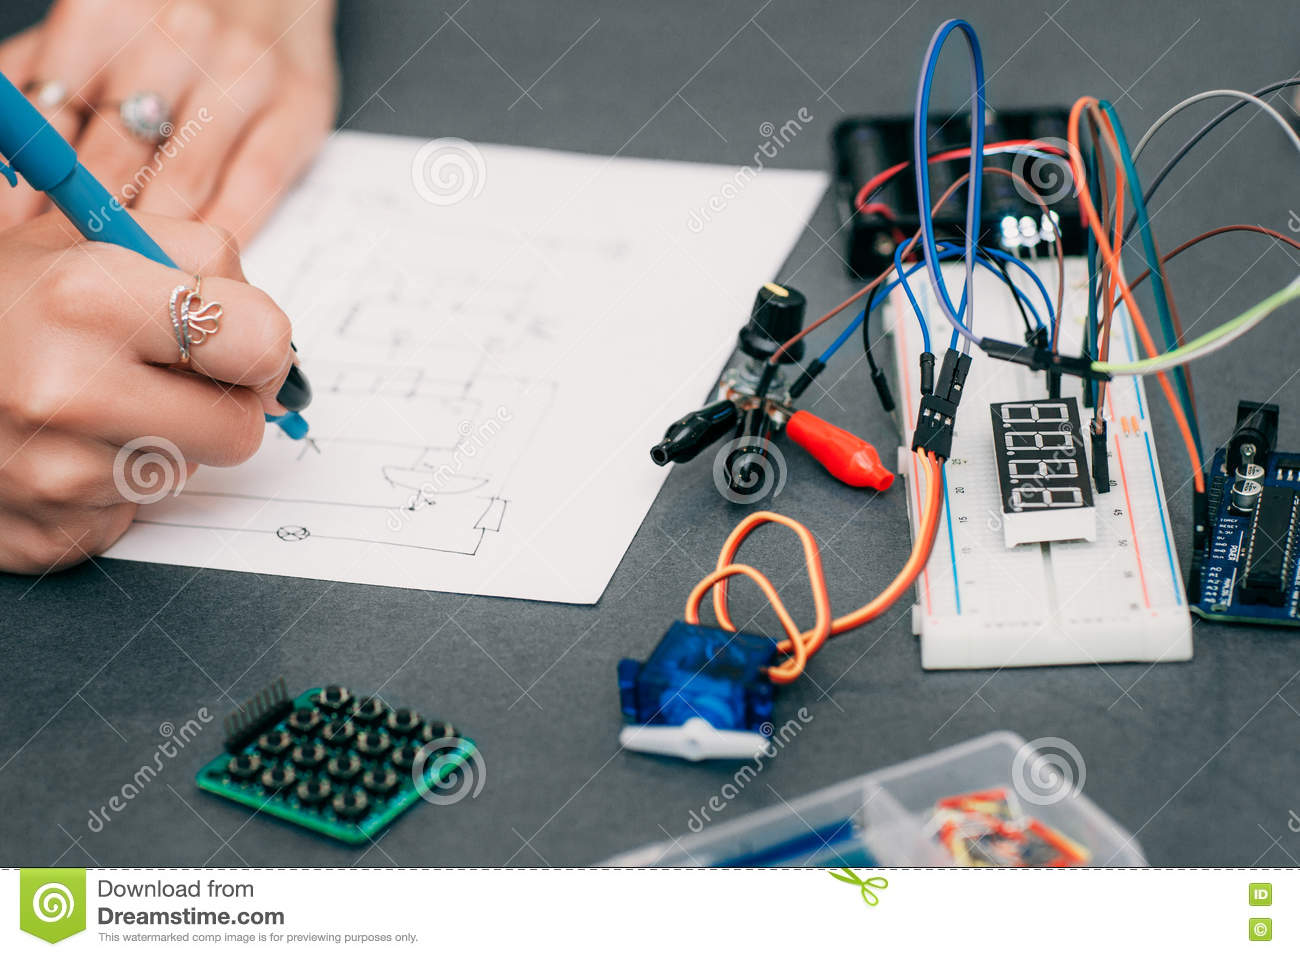 Wiring diagram drawing with breadboard